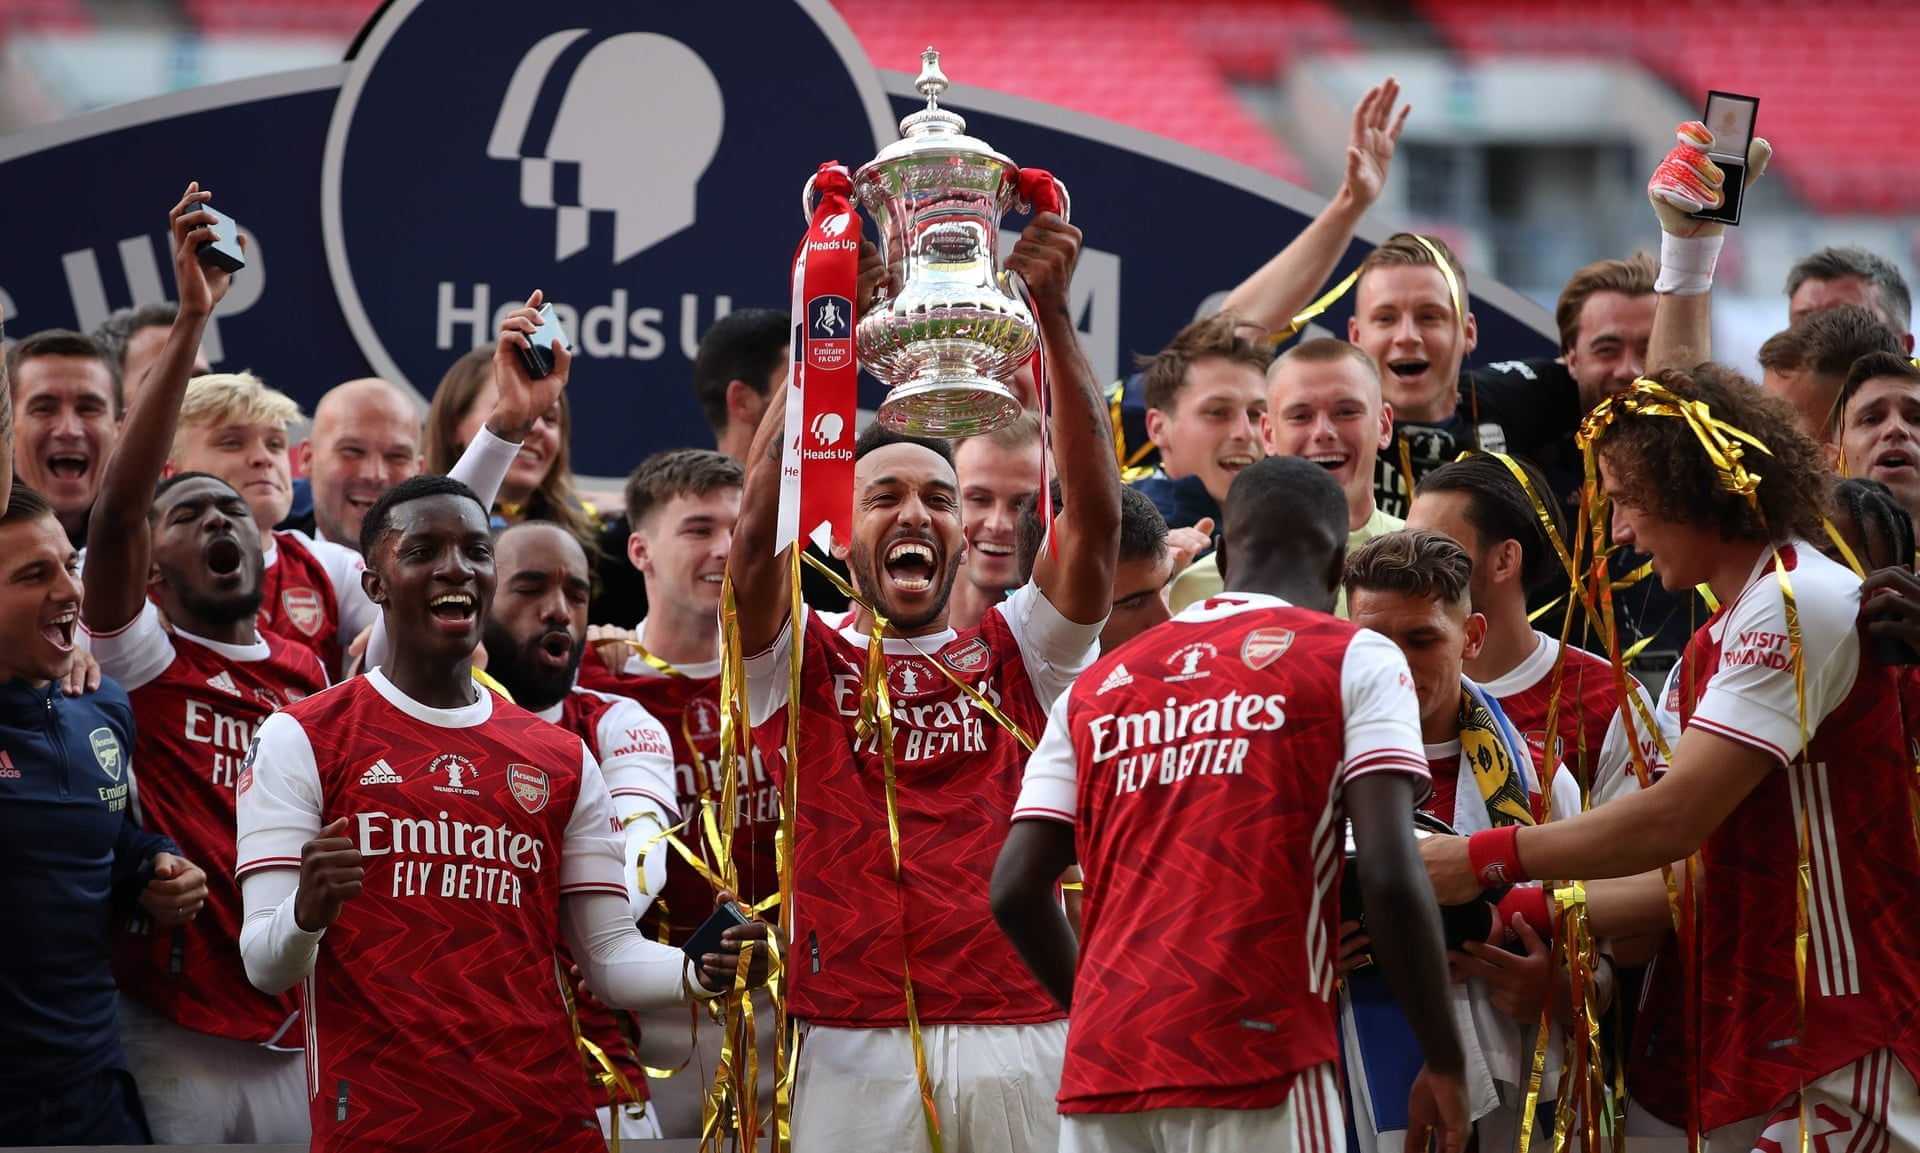 Arsenal came from behind to beat Chelsea and win FA Cup